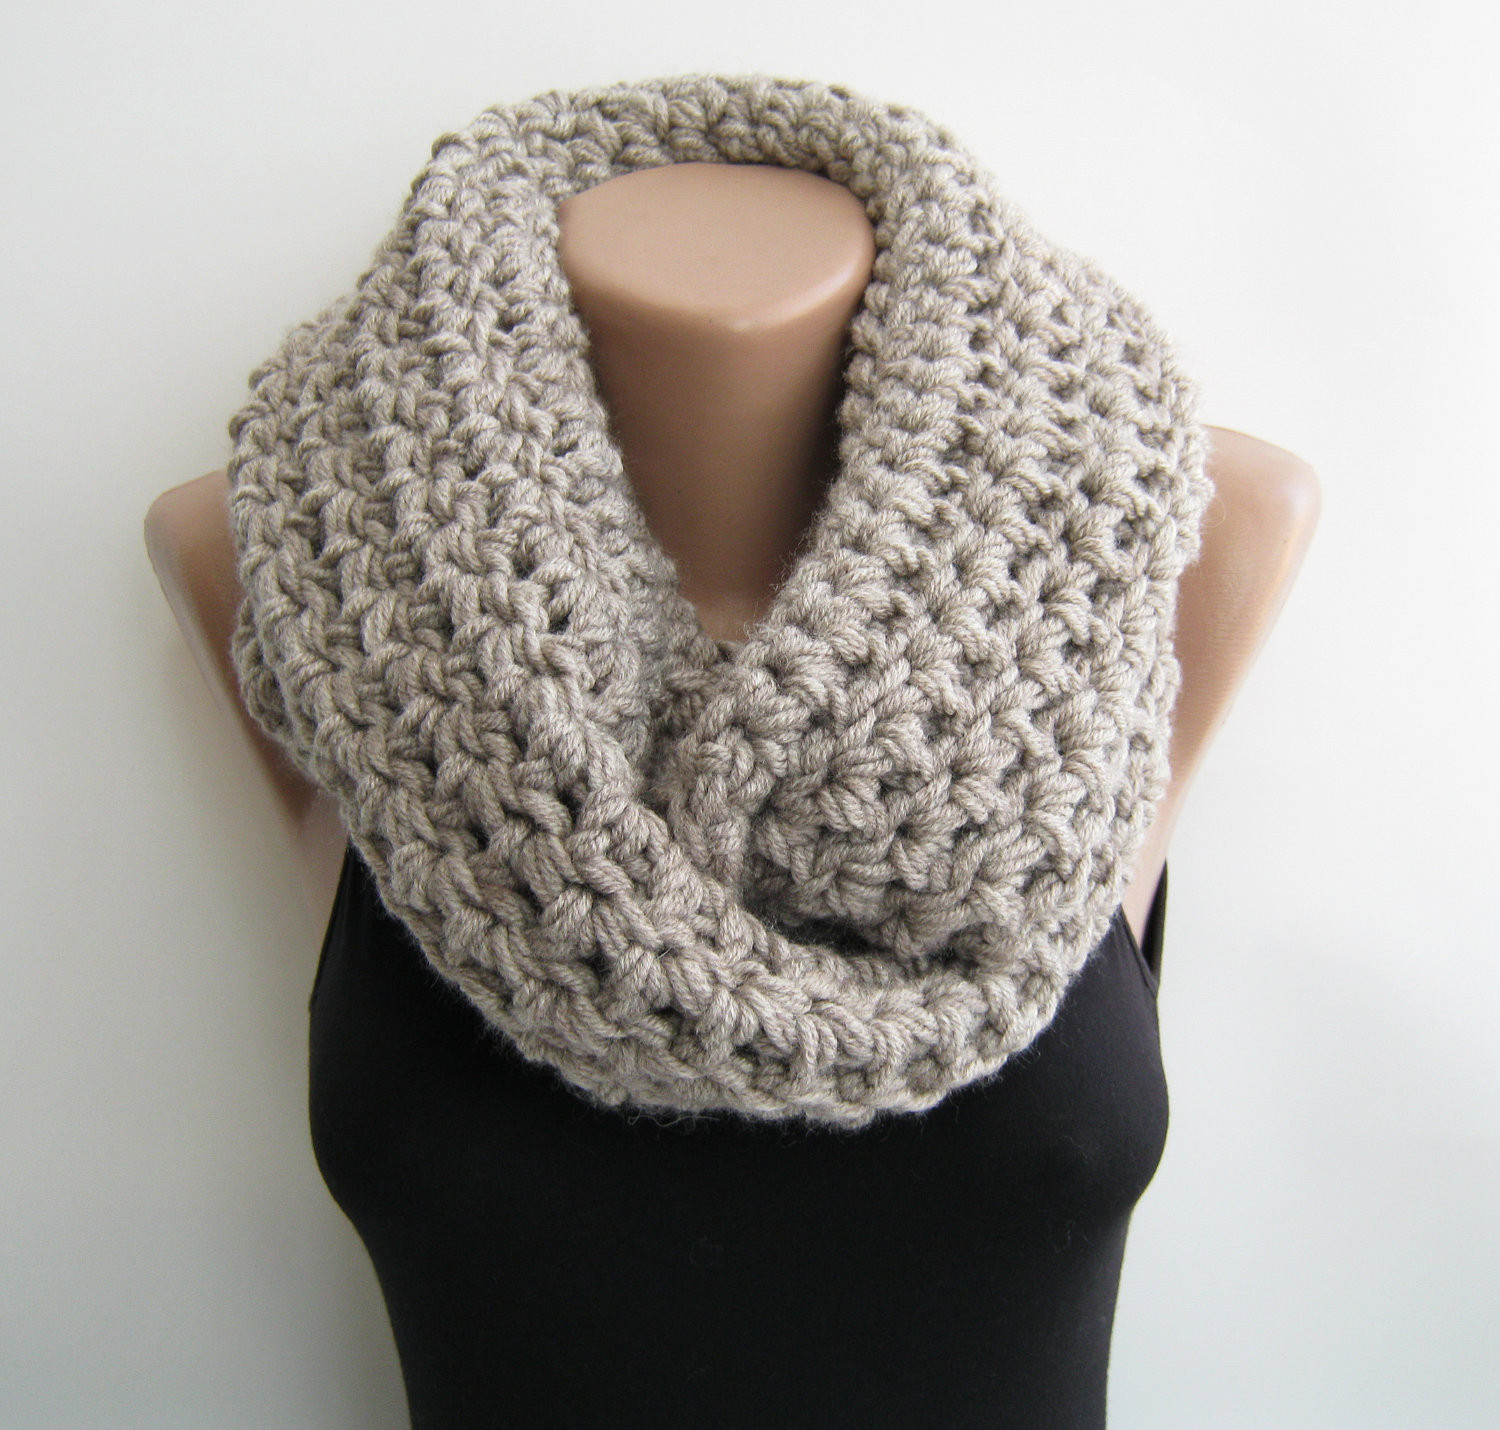 Infinity Scarf Knitting Pattern Best Of Chunky Circle Scarf Crochet Pattern Of New 43 Images Infinity Scarf Knitting Pattern